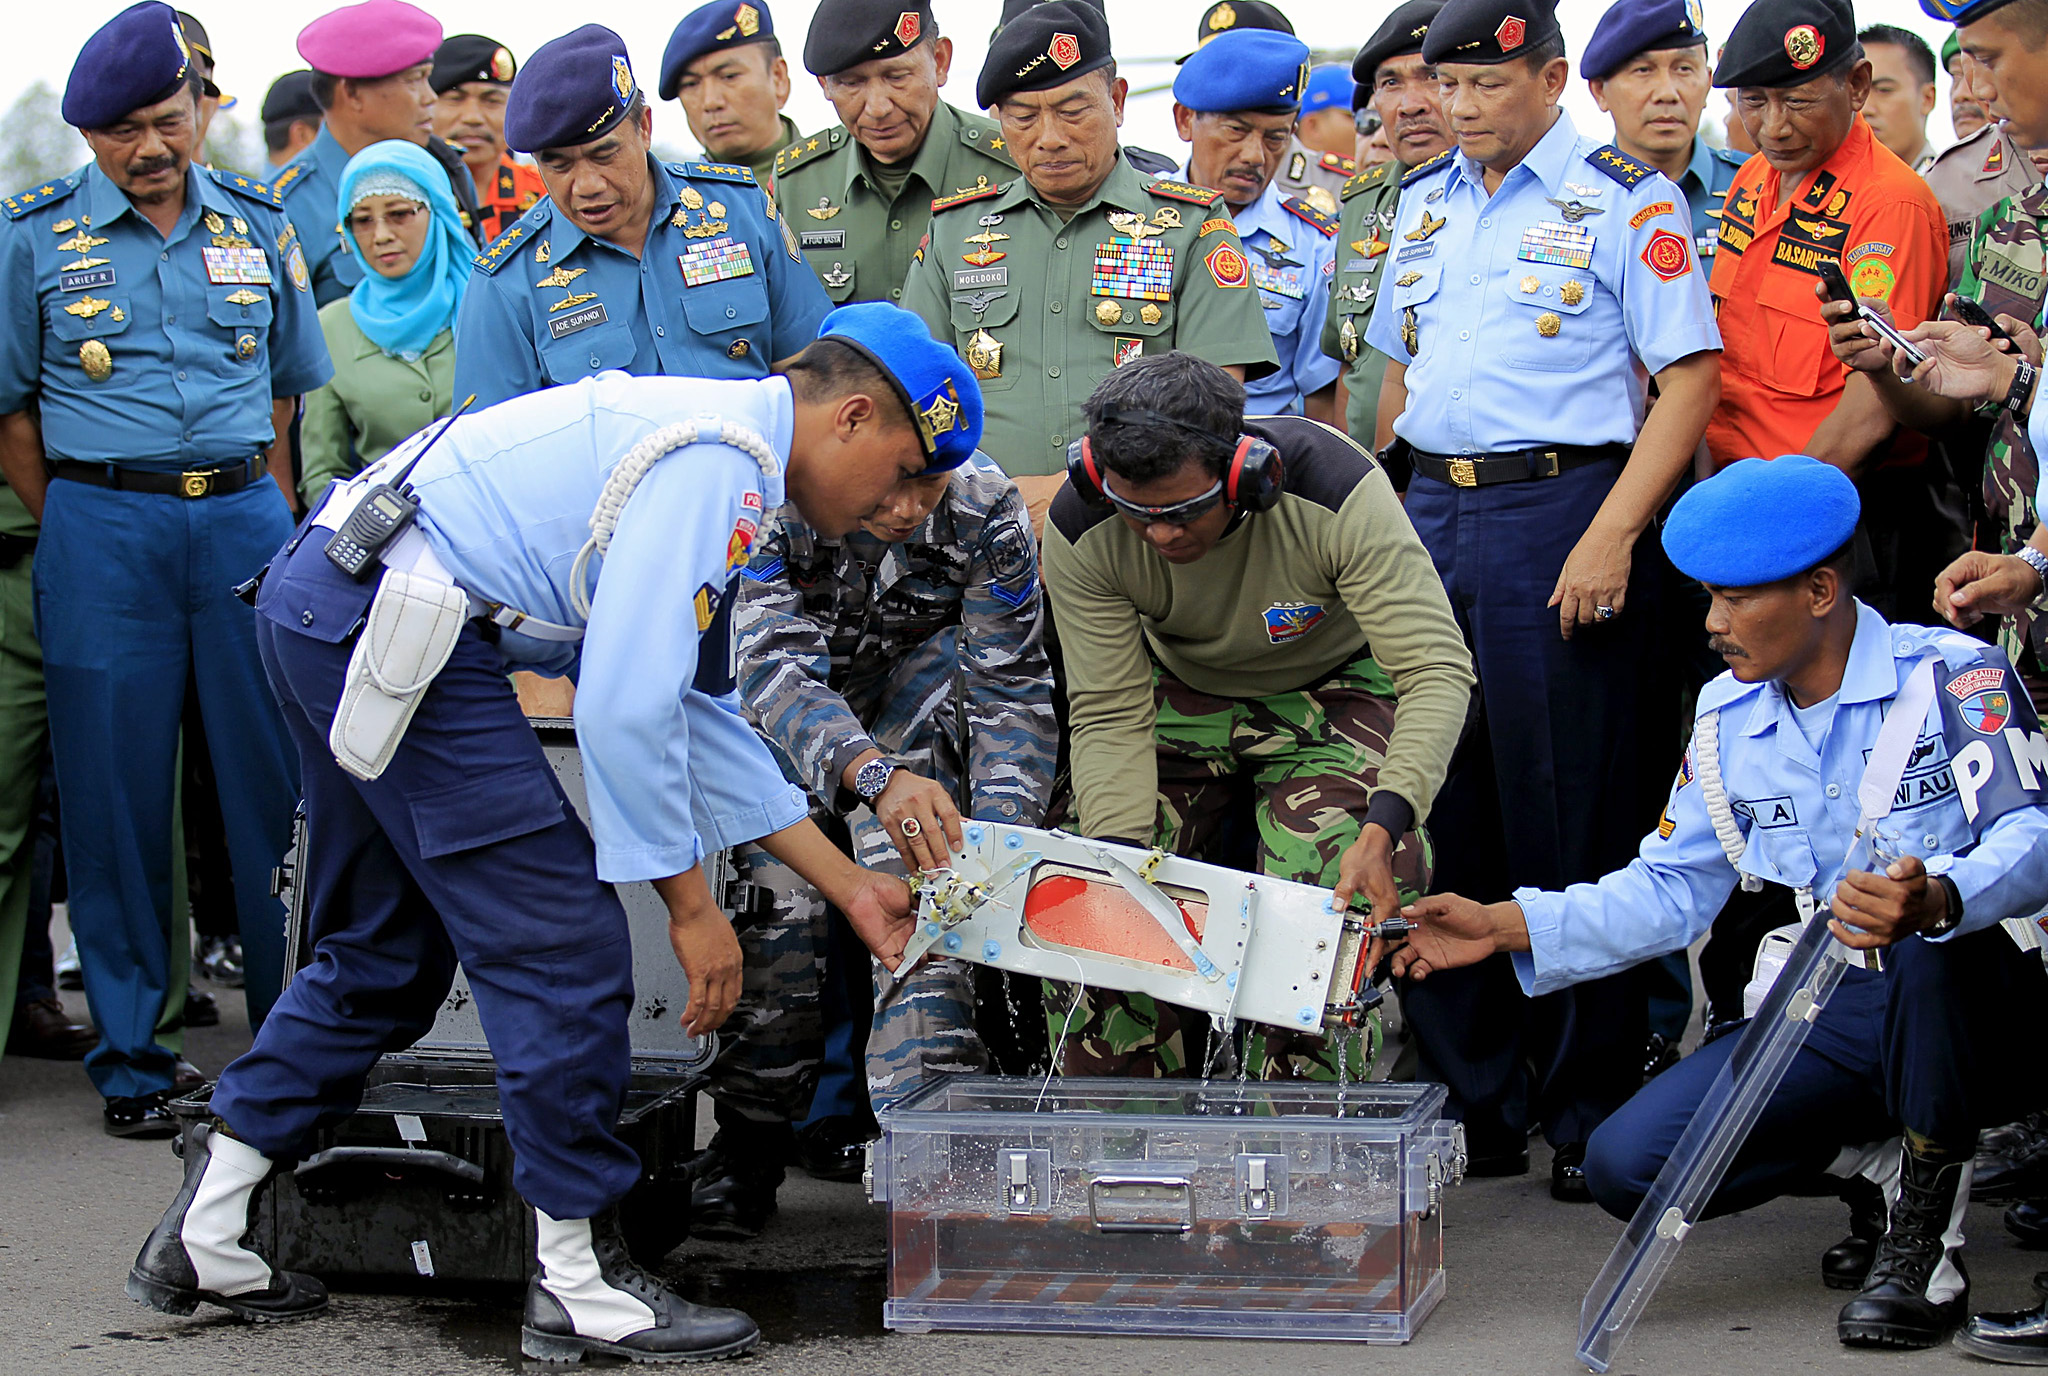 Recovery mission for crashed AirAsia plane in Pangkalan Bun Indonesia...epa04556615 Indonesian officers put the flight data recorder during the recovery mission at Iskandar Military Airport in Pangkalan Bun, Central Borneo, Indonesia, 12 January 2015. The cockpit voice recorder from the AirAsia plane that crashed into the Java Sea has been found. The device was found near the location of the flight data recorder retrieved earlier in the day, search operation director Suryadi Supriyadi said.  EPA/BAGUS INDAHONO